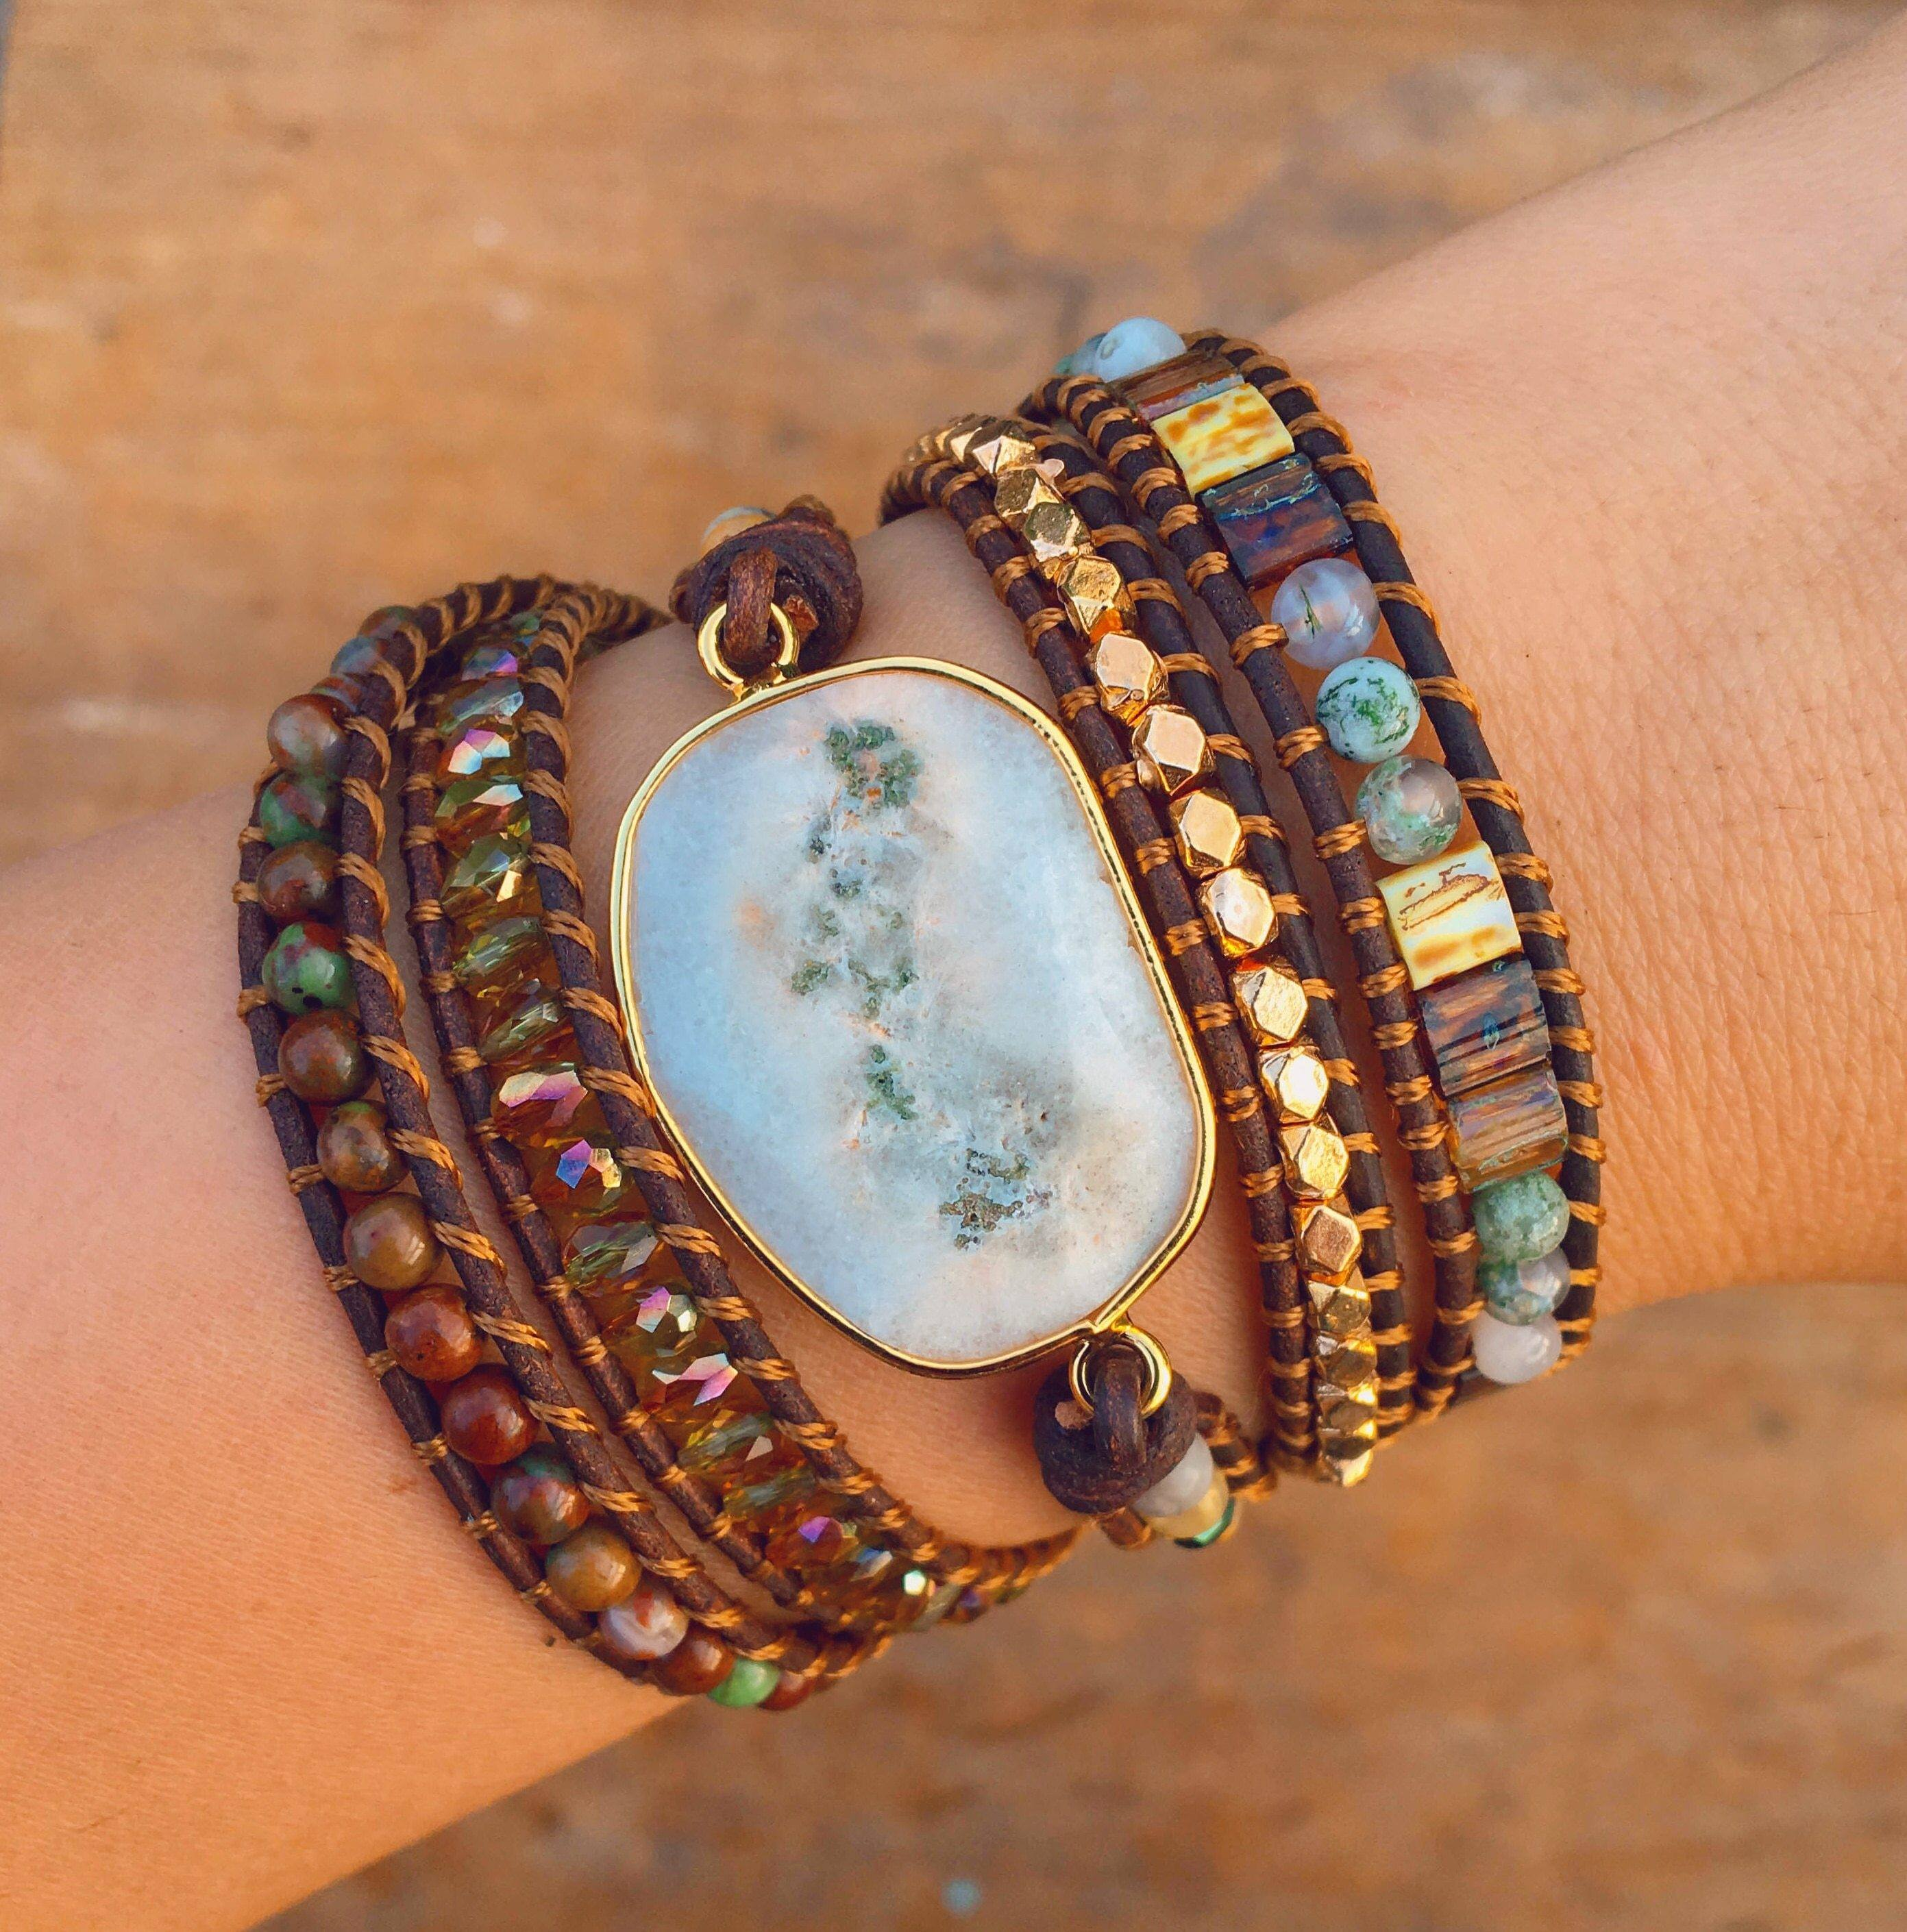 Healing Solar Quartz Protection Wrap Bracelet